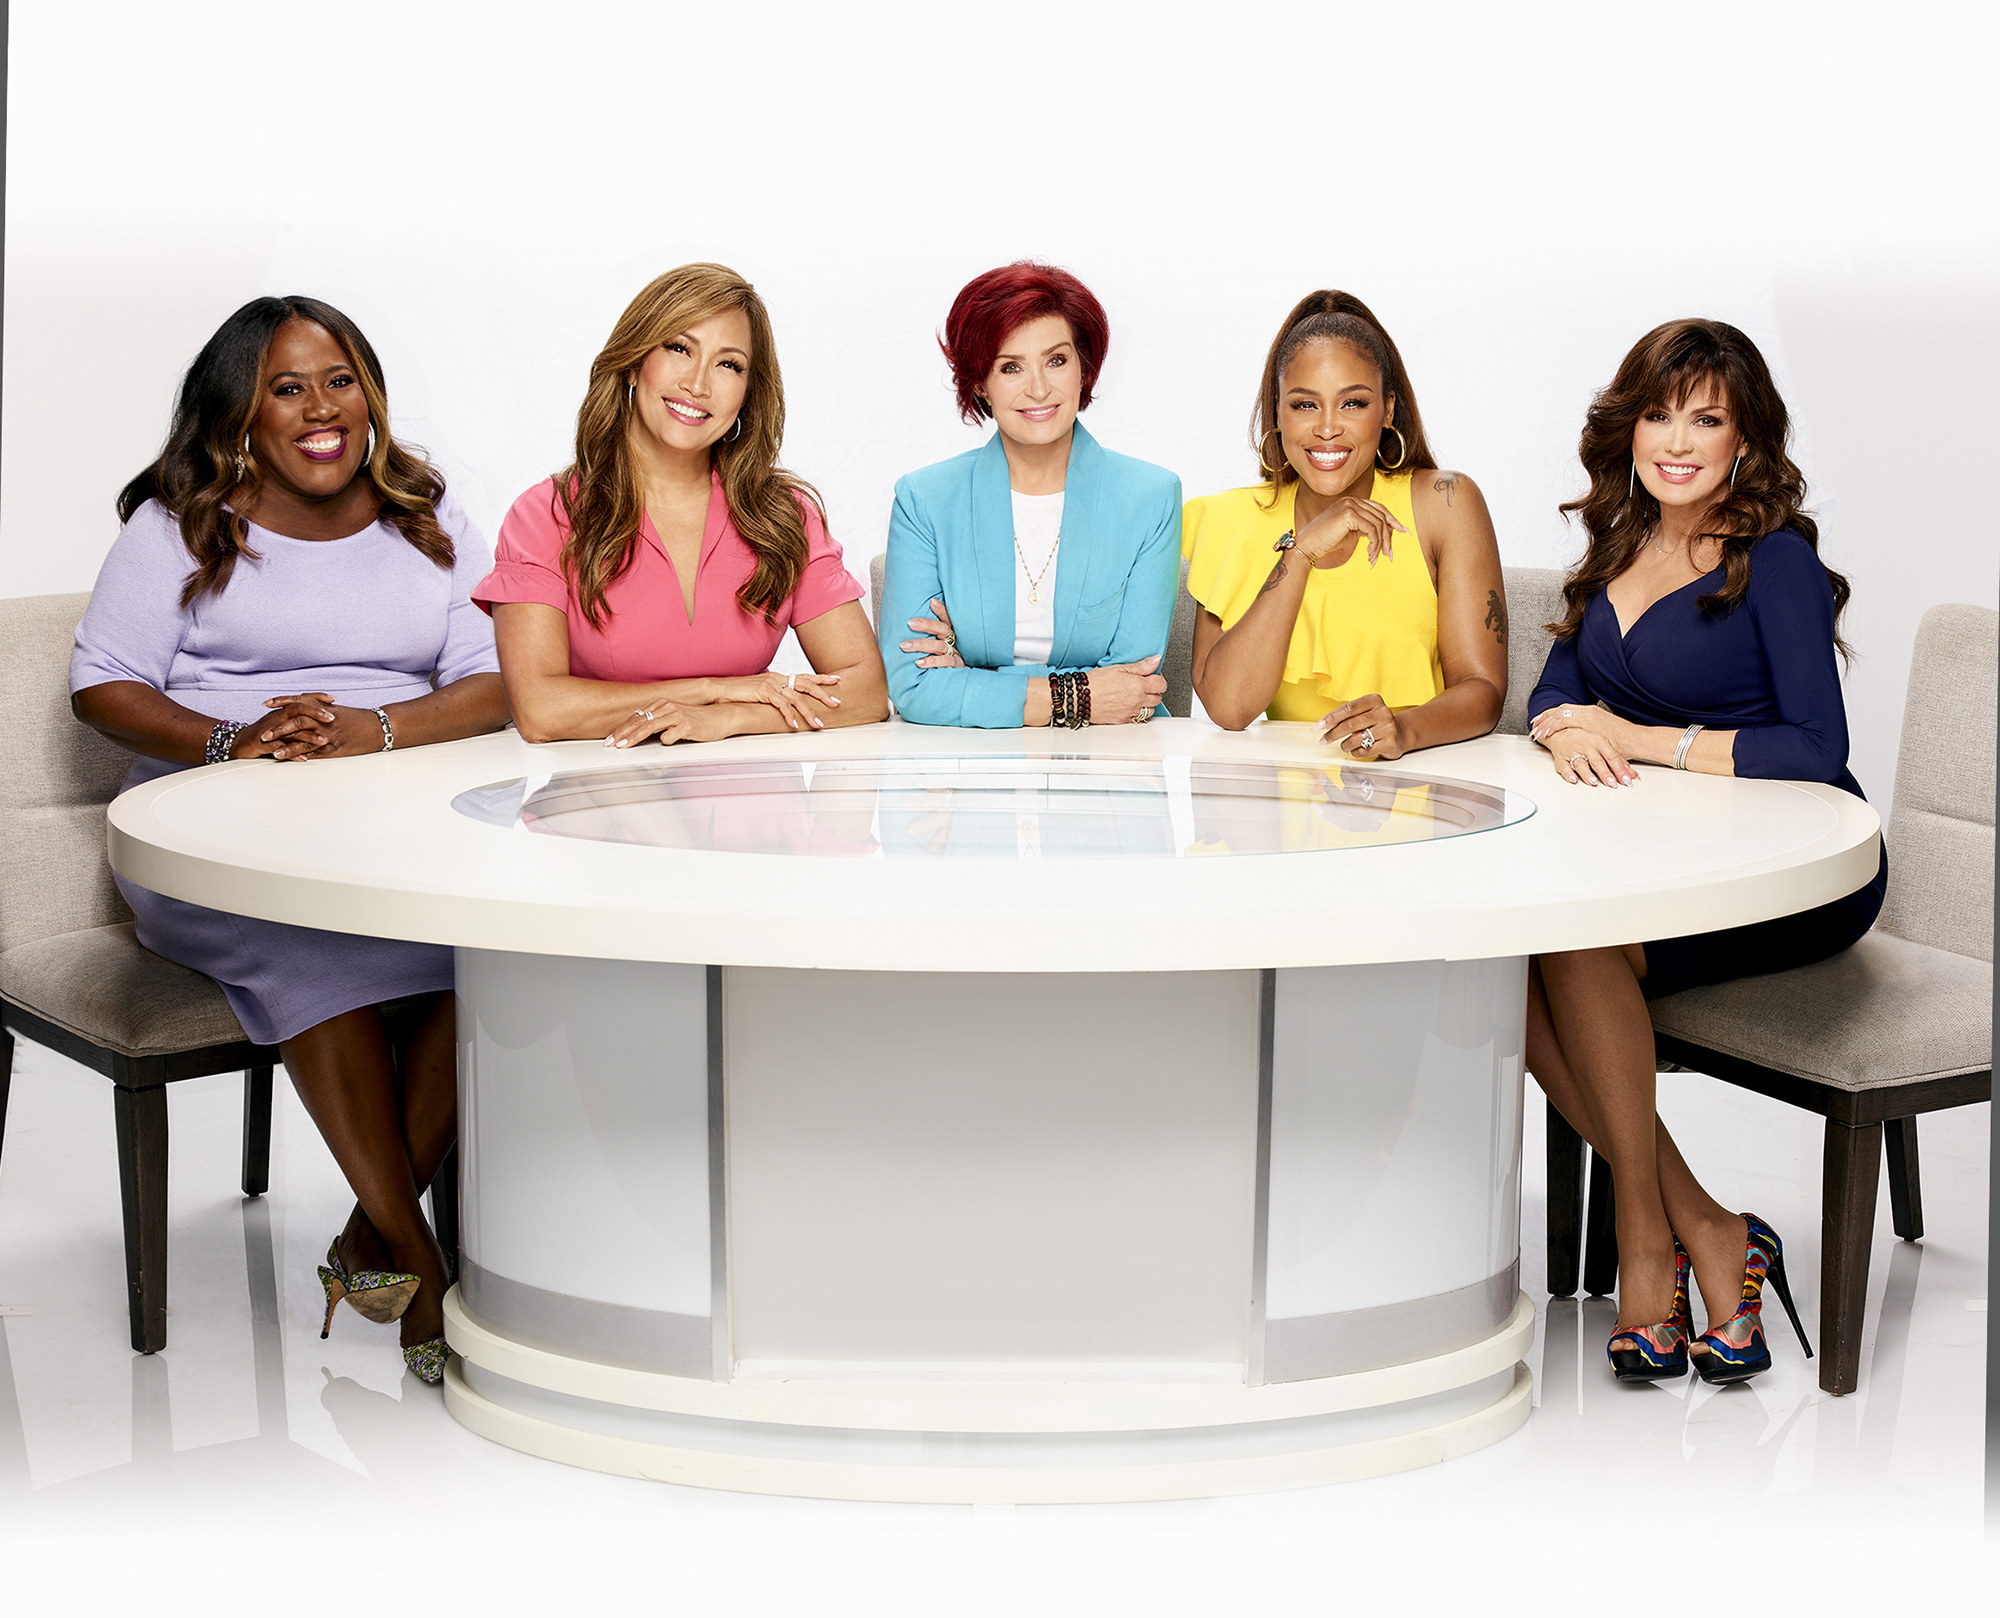 Sheryl Underwood, Carrie Ann Inaba, Sharon Osbourne, Eve Cooper, and Marie Osmond sitting around a table in a promotional photo for The Talk